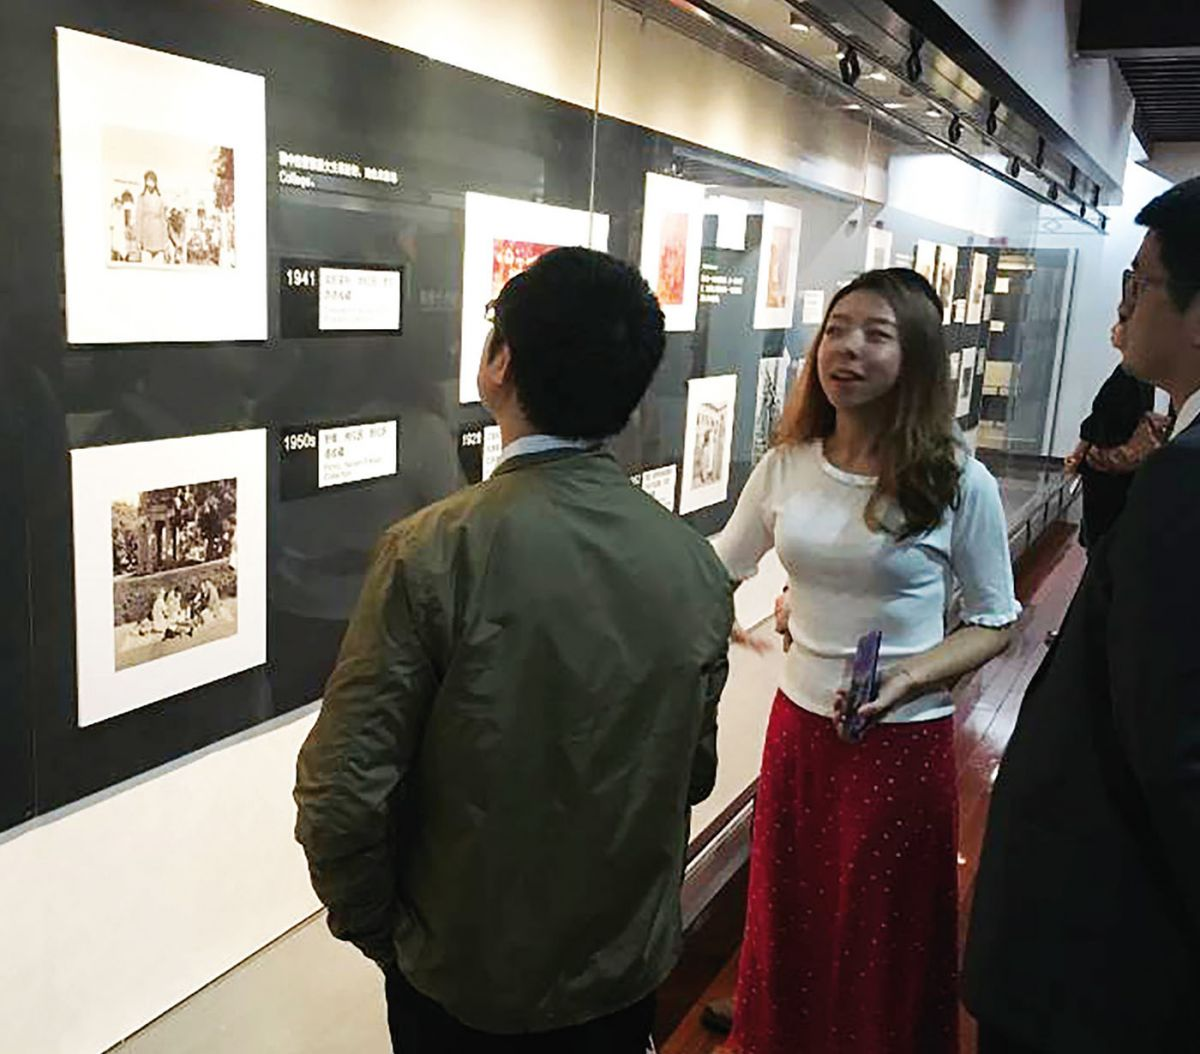 Students tour the exhibition (photo by Xiaomei Zhao, 2018)